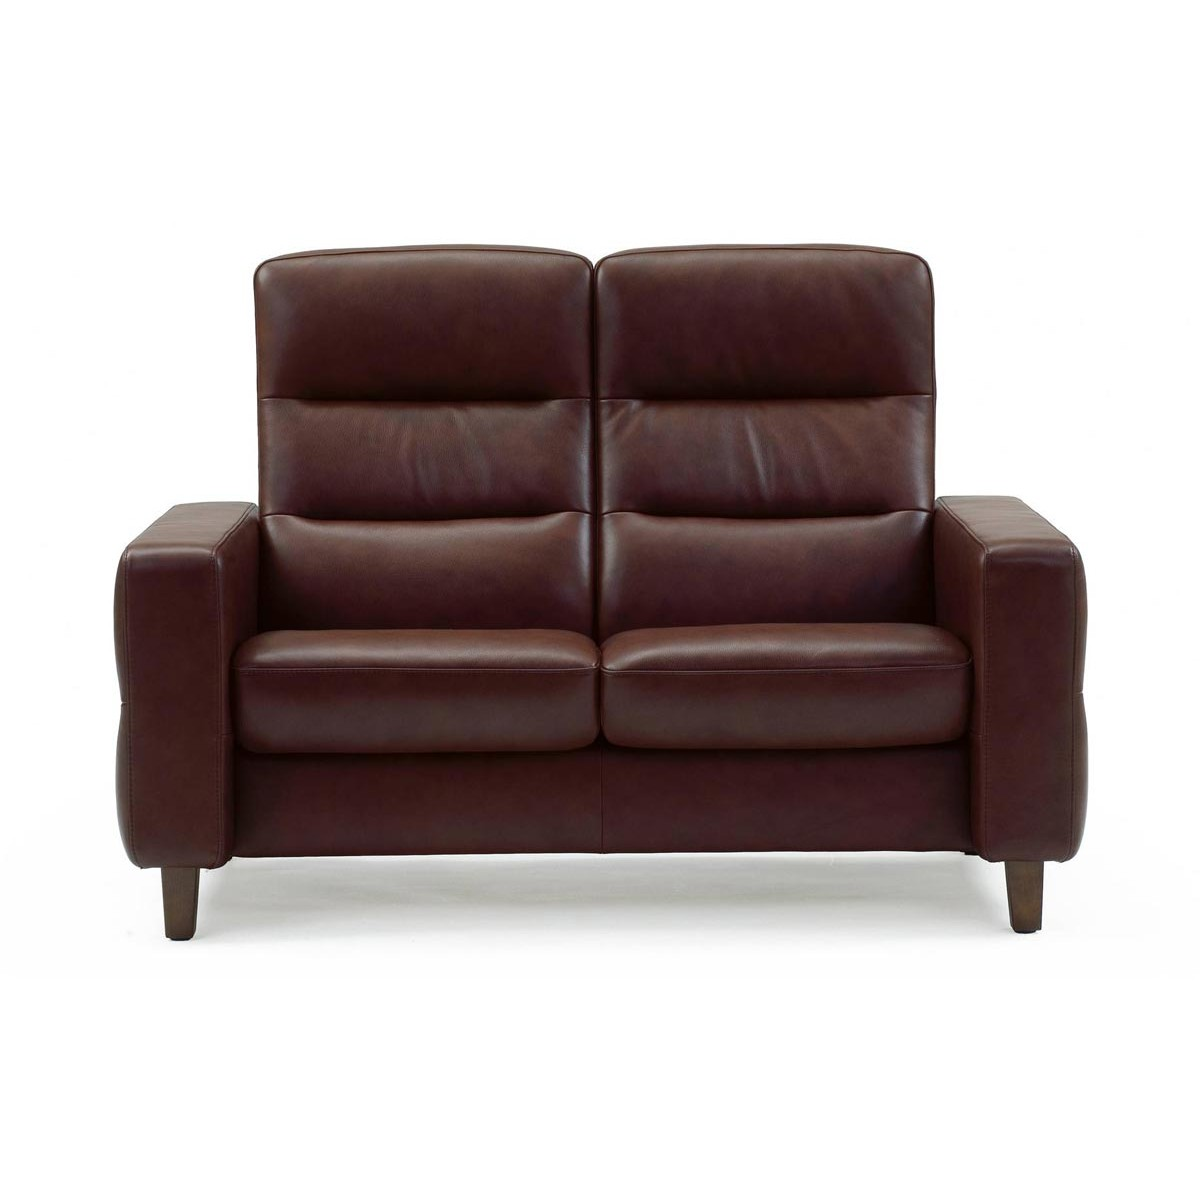 Stressless Wave High Back Loveseat From 3 395 00 By